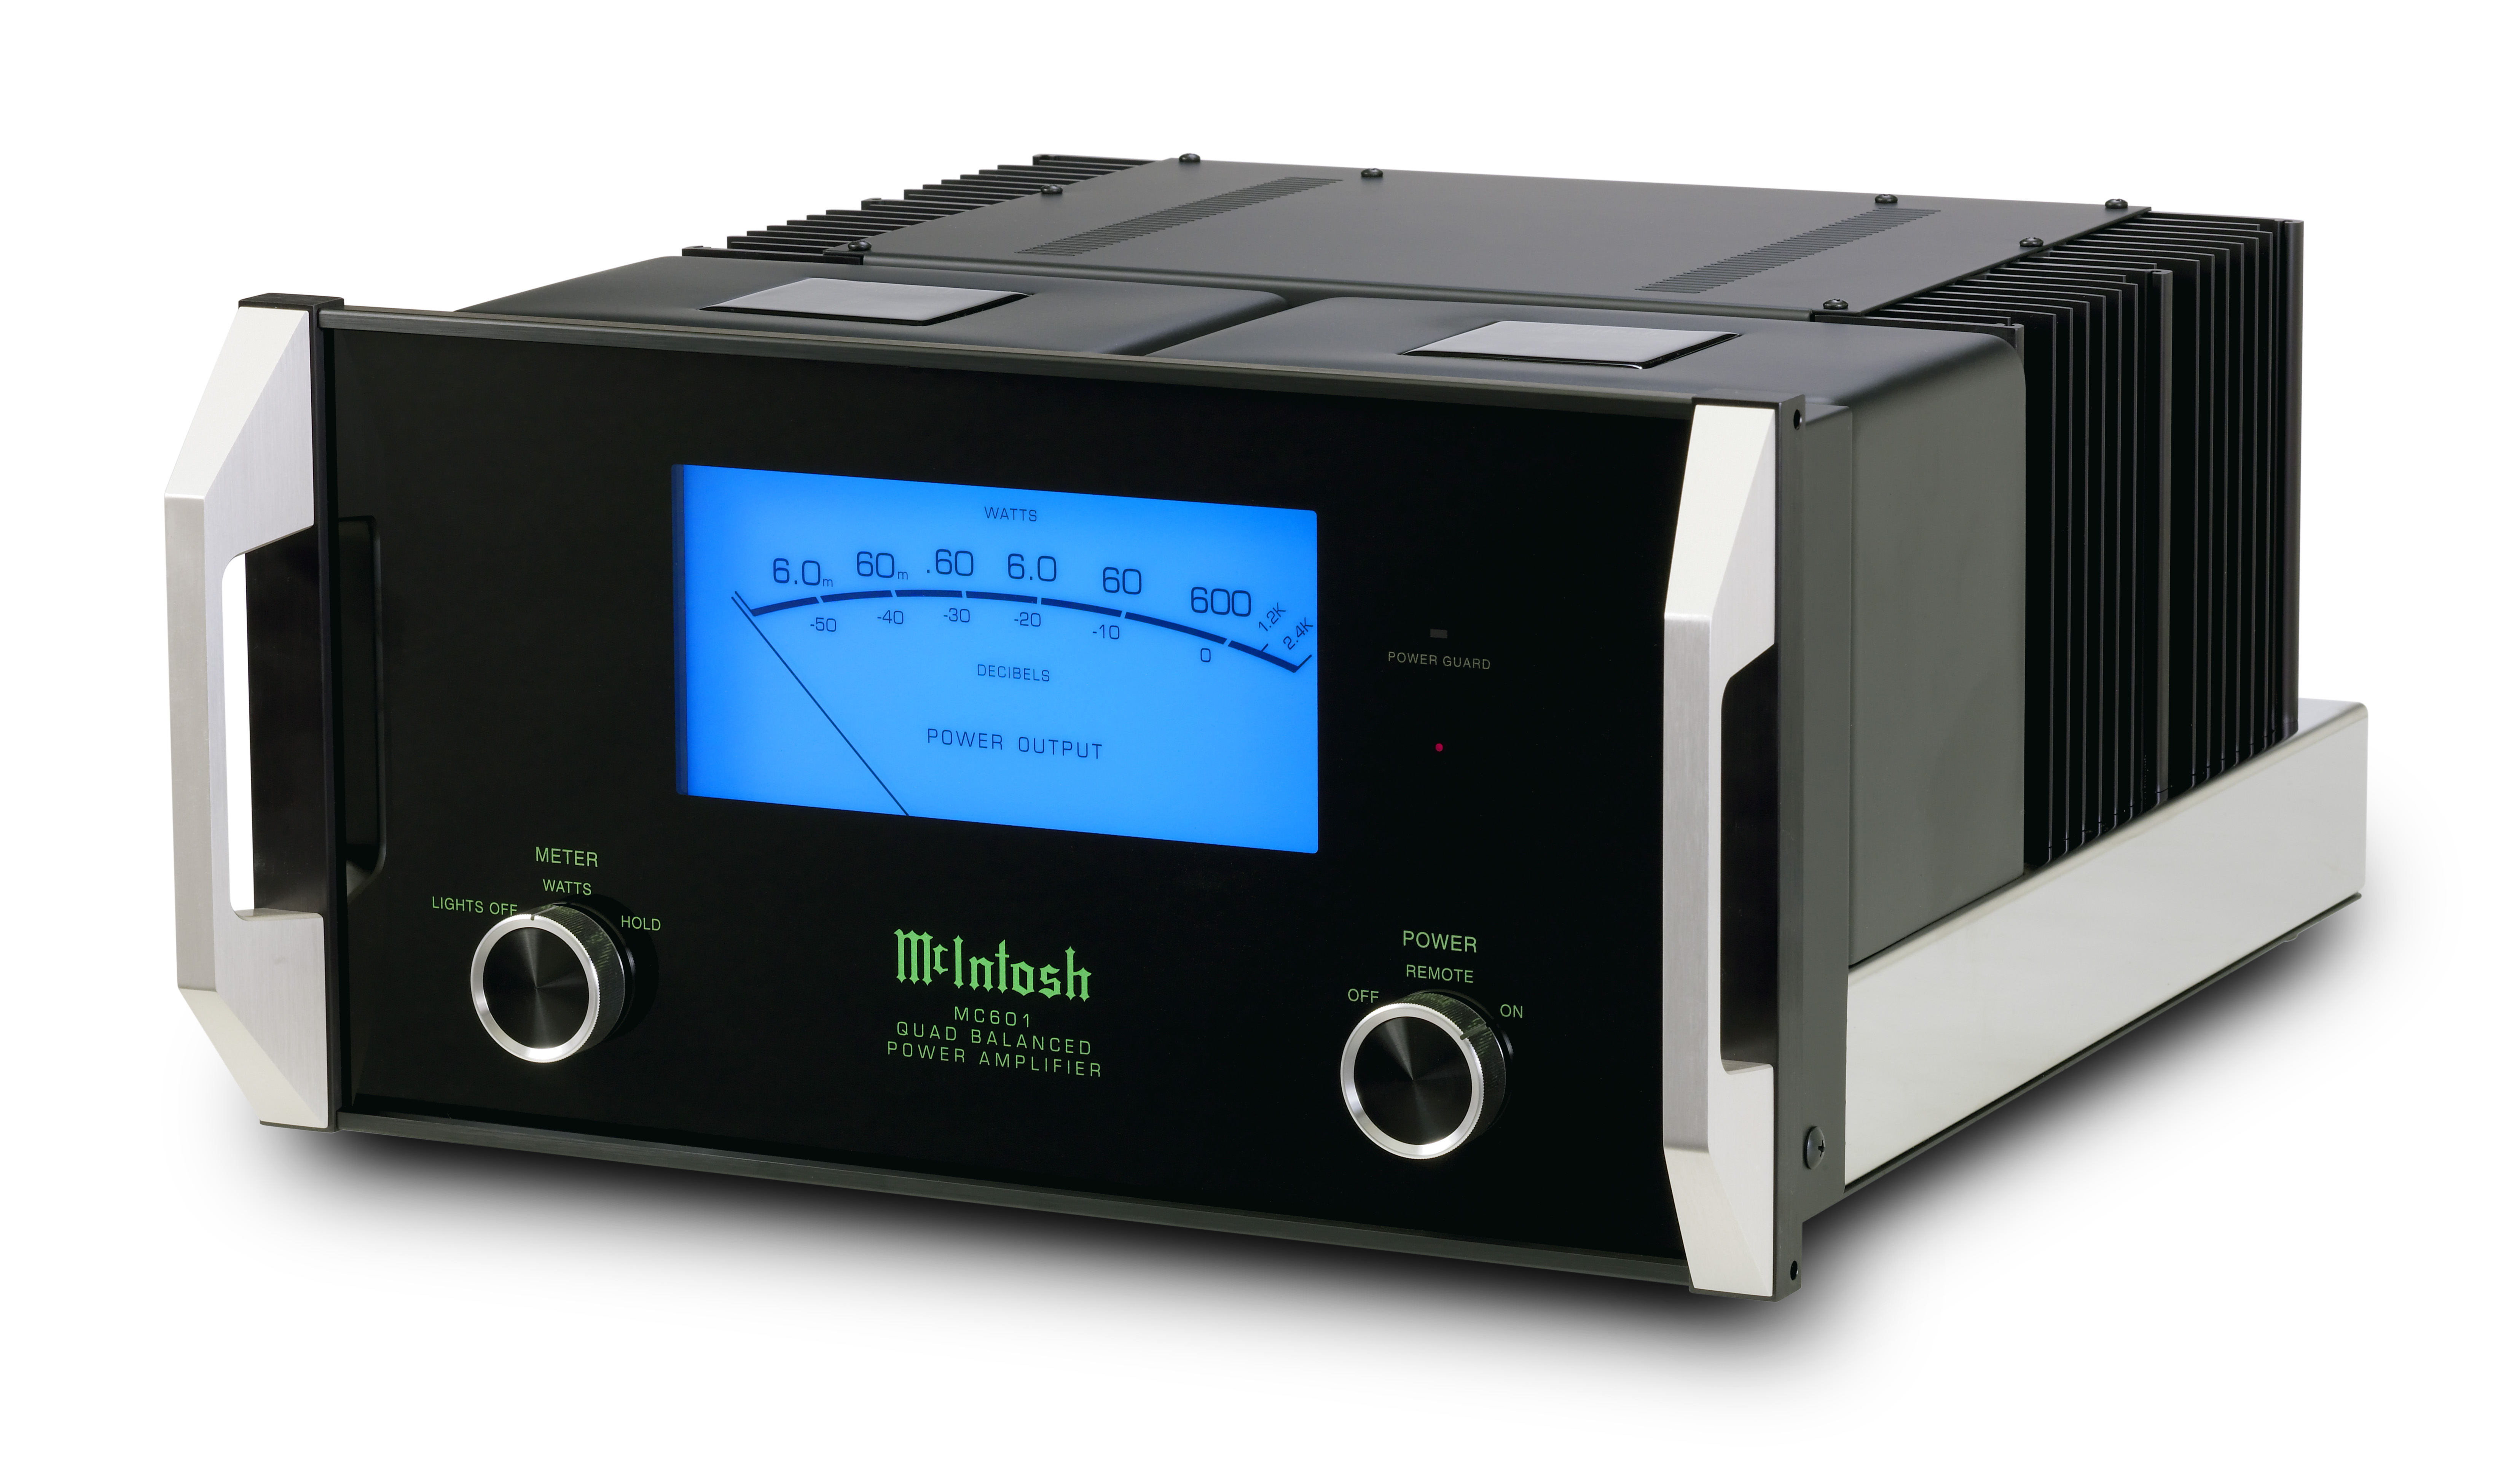 Mcintosh Mc601 Amplifier 800w Audio Circuit The Power Ideal For Home